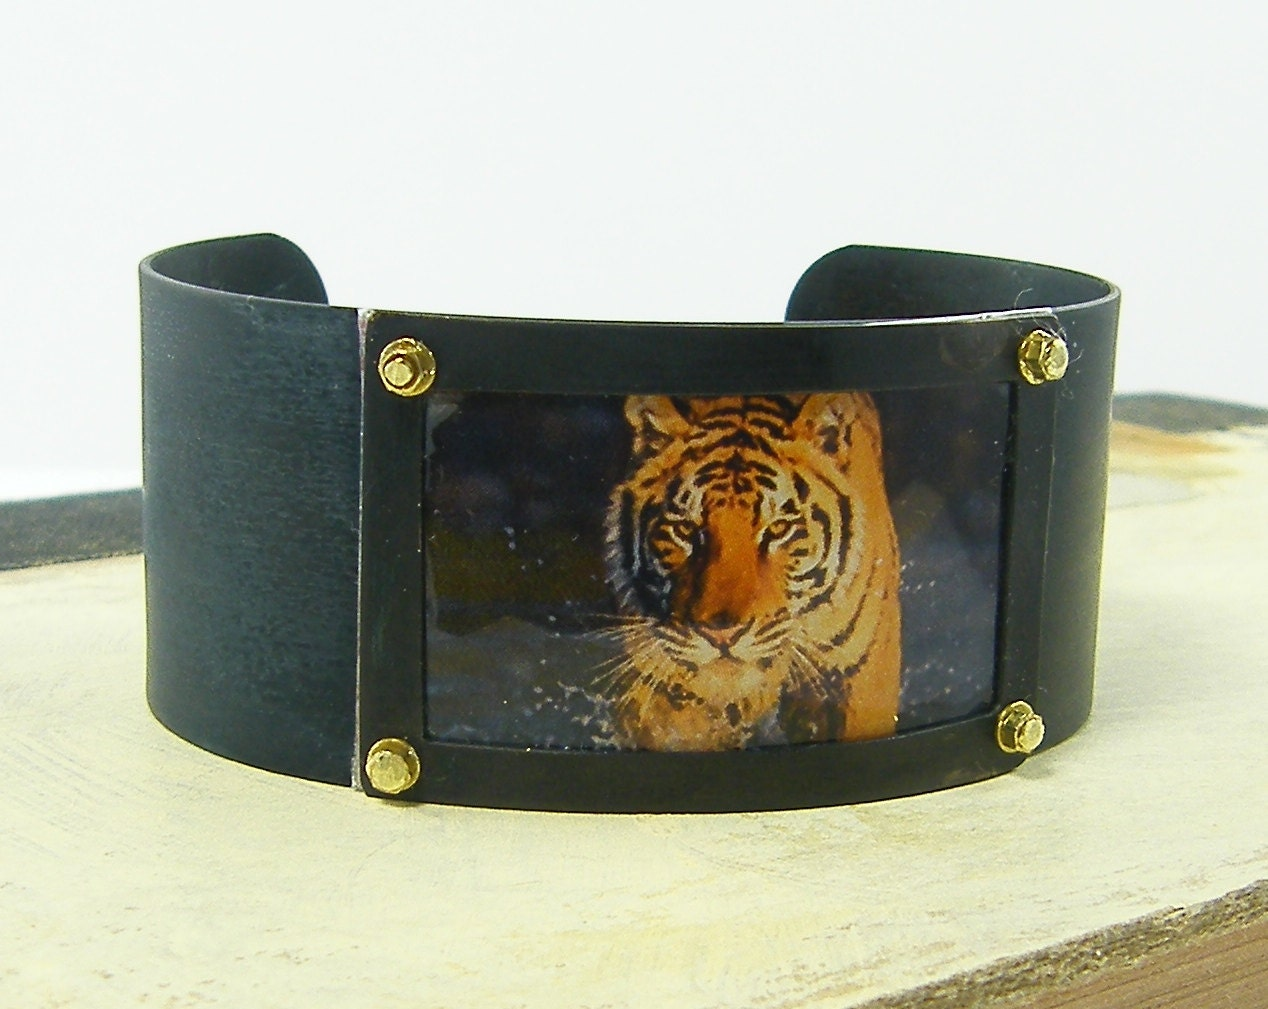 Tiger Cuff Bracelet - Orange Brown Black Big Cat Jungle Animal Picture Bold Statement Jewelry Photo Cuff - CharleneSevier